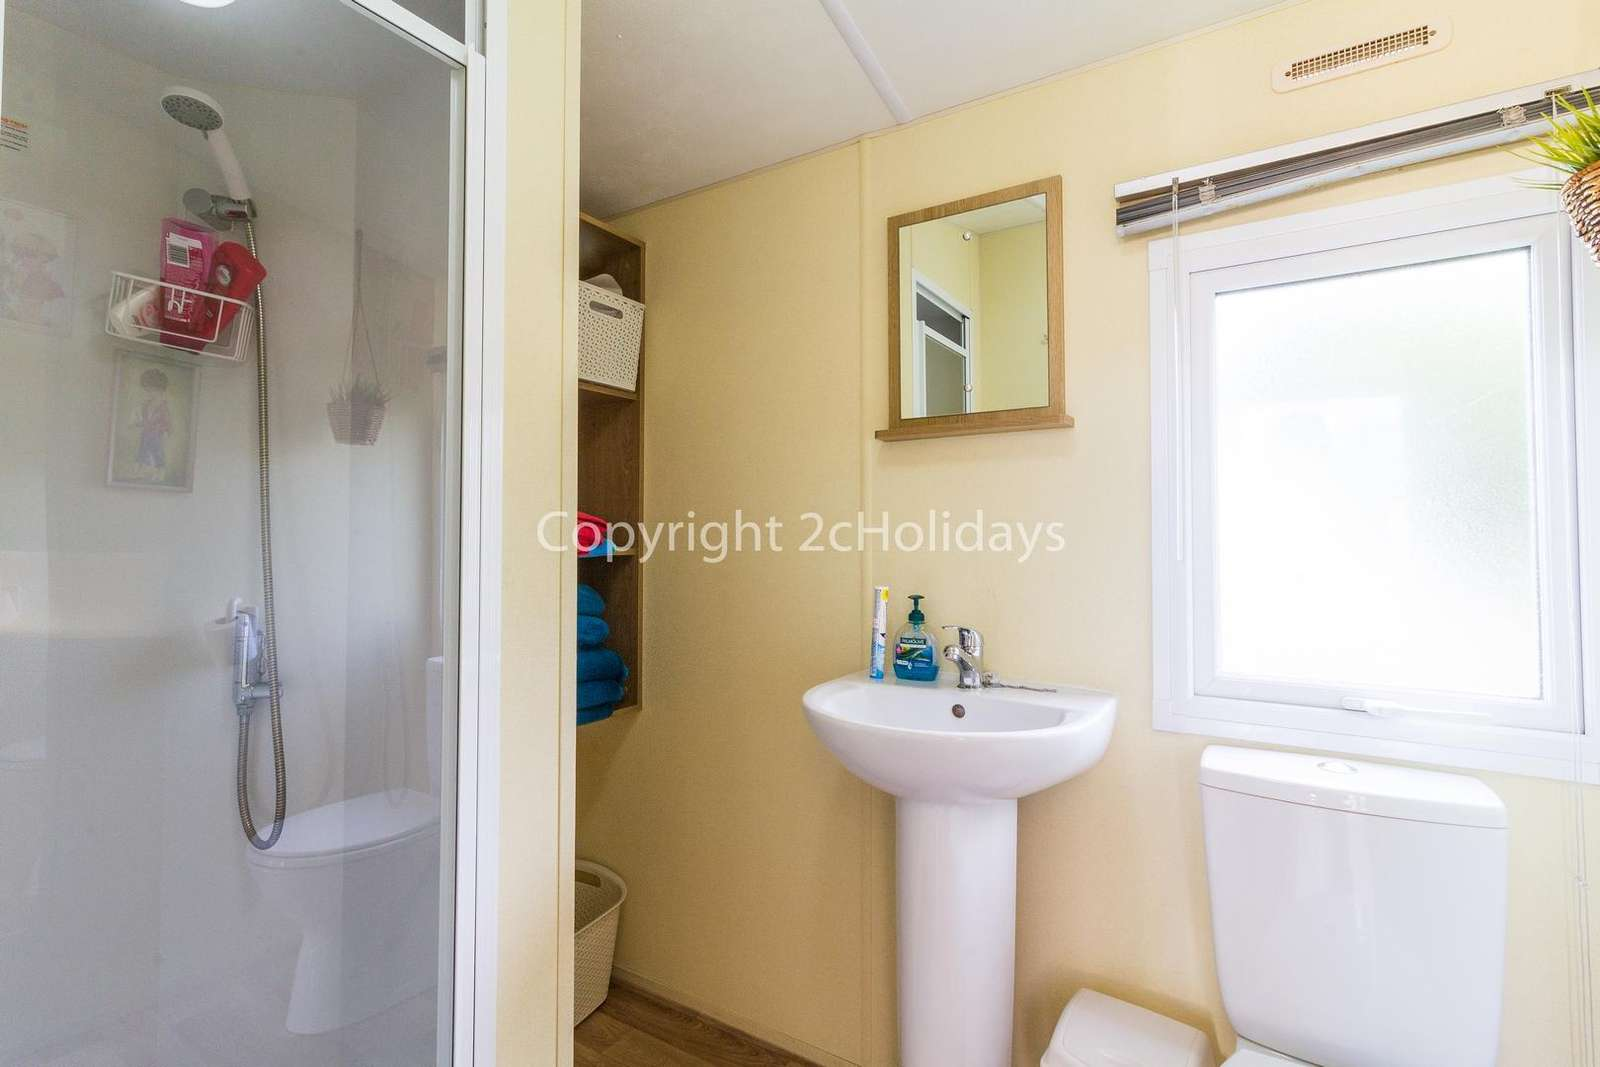 We ensure all holiday homes are cleaned to the highest standard